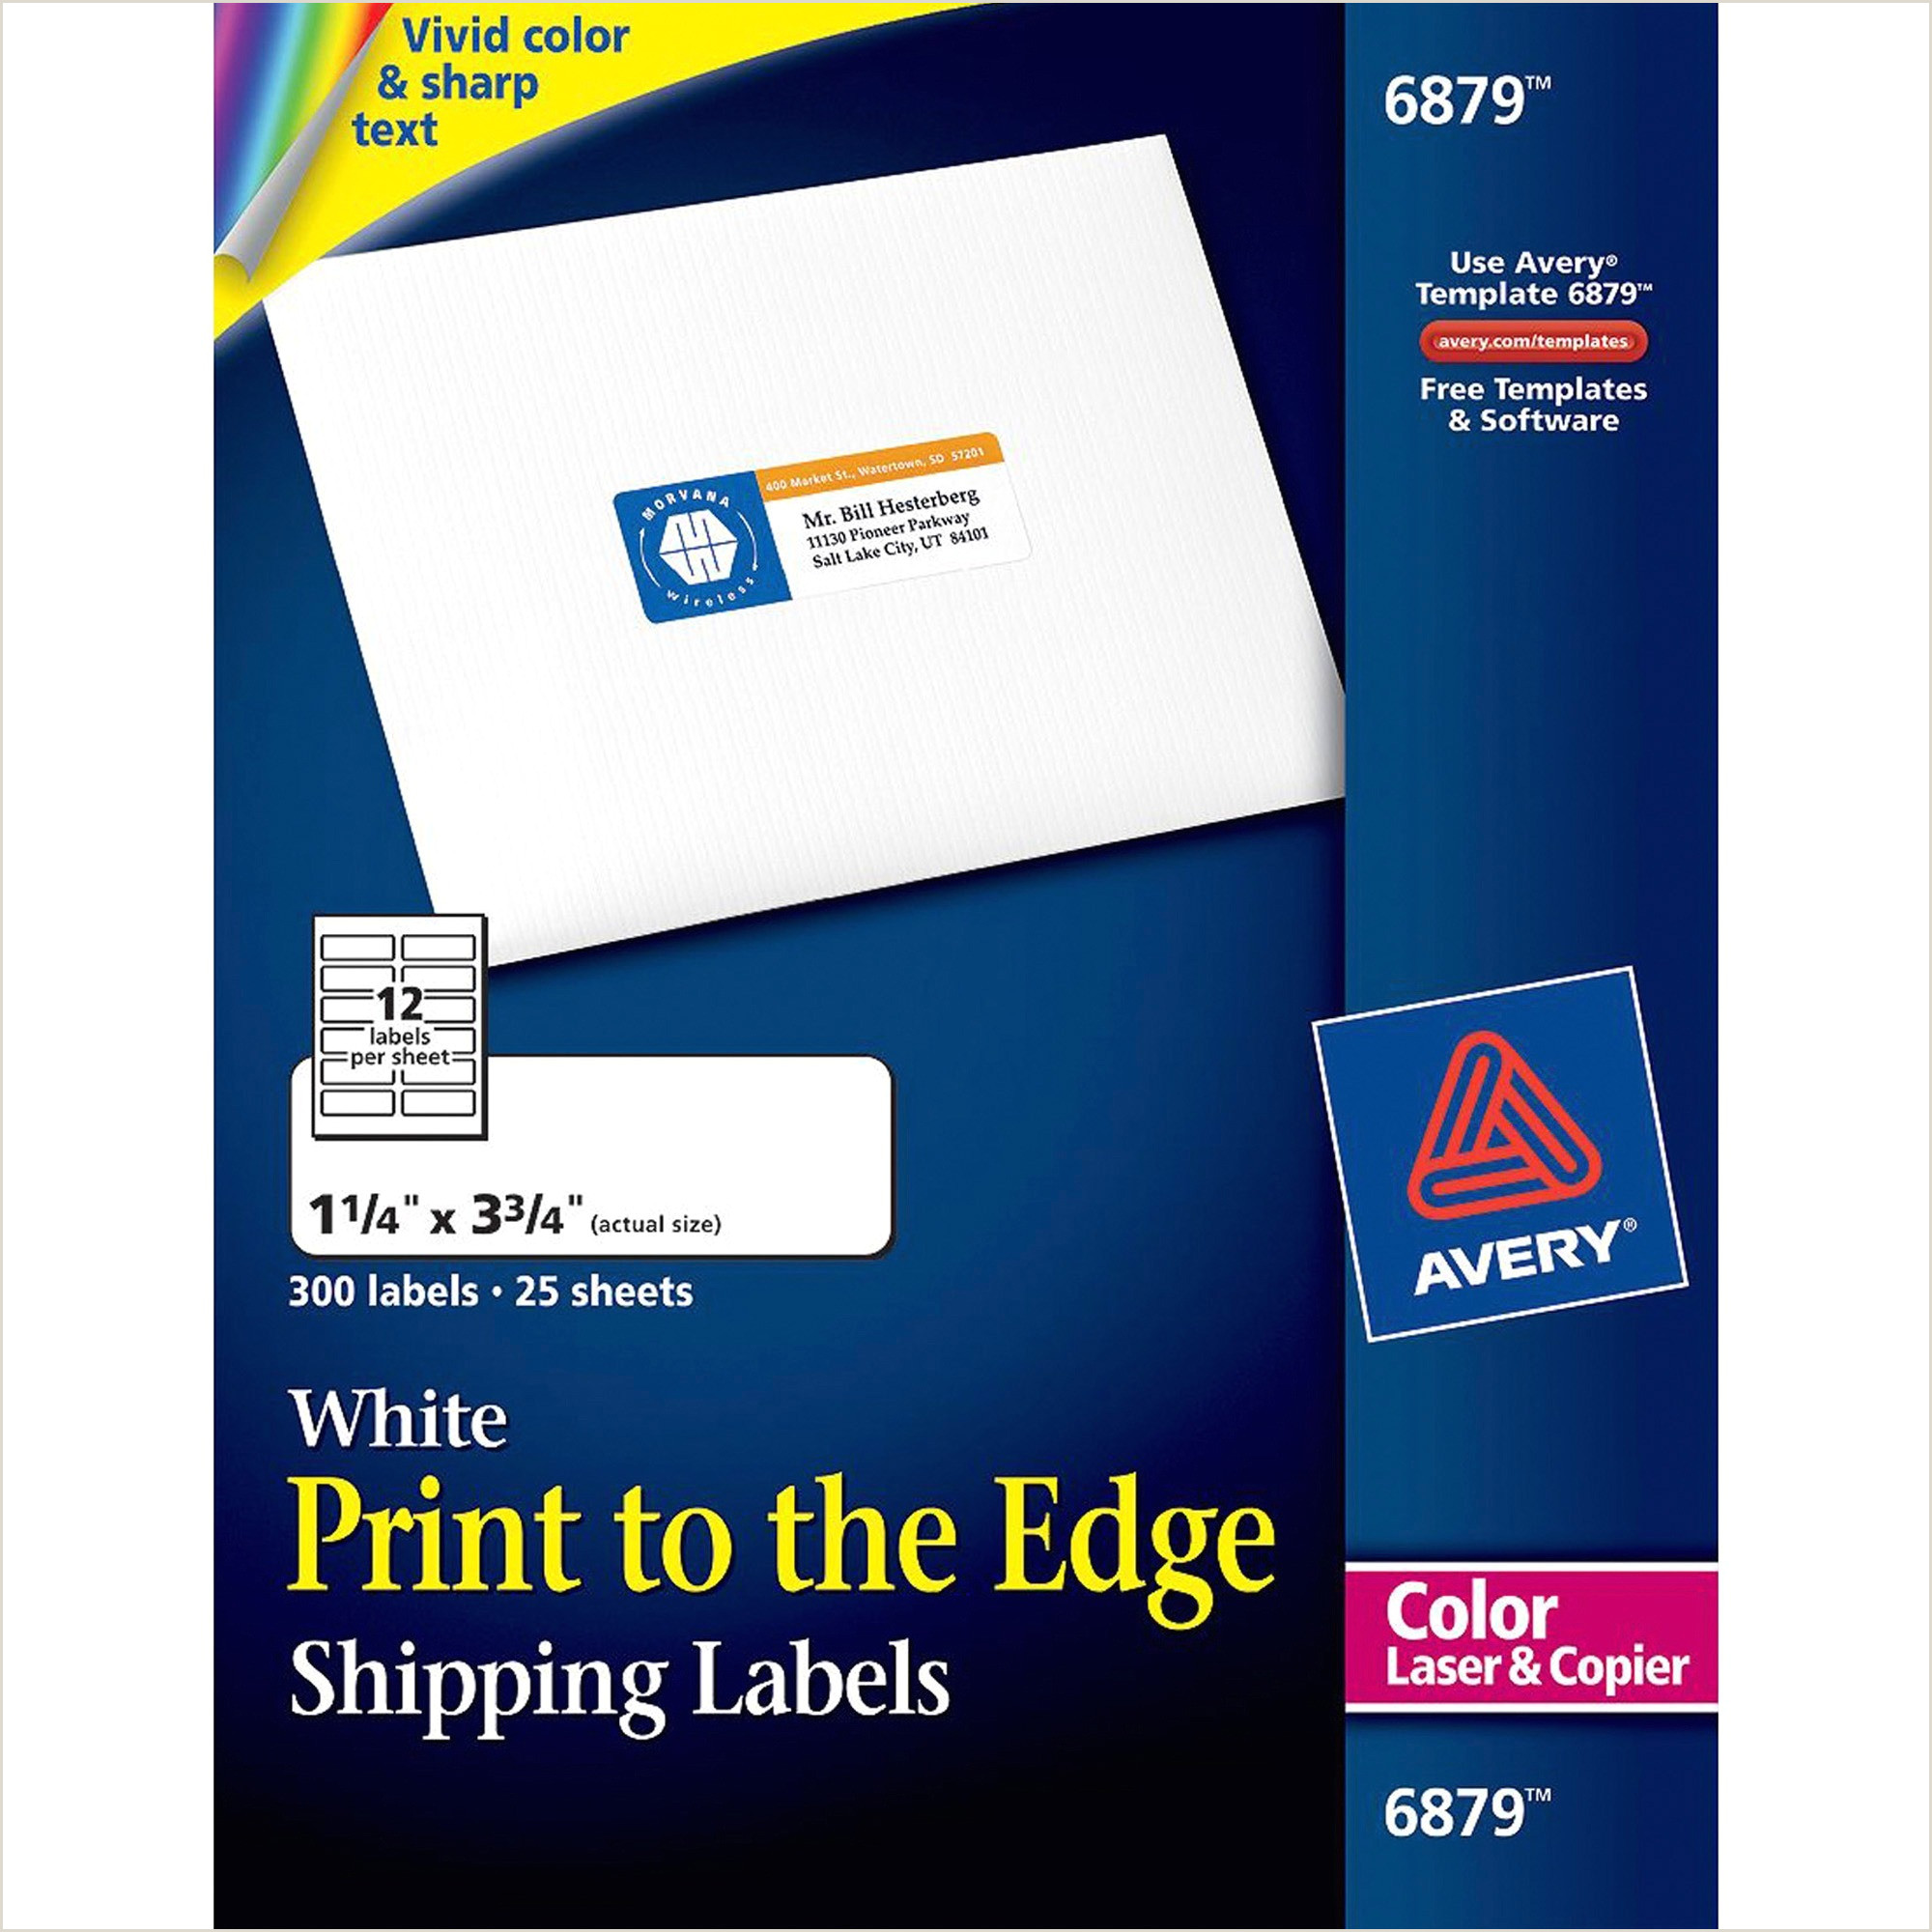 Avery Laser Labels Matte Mailing 3 3 4 x 1 1 4 300 per